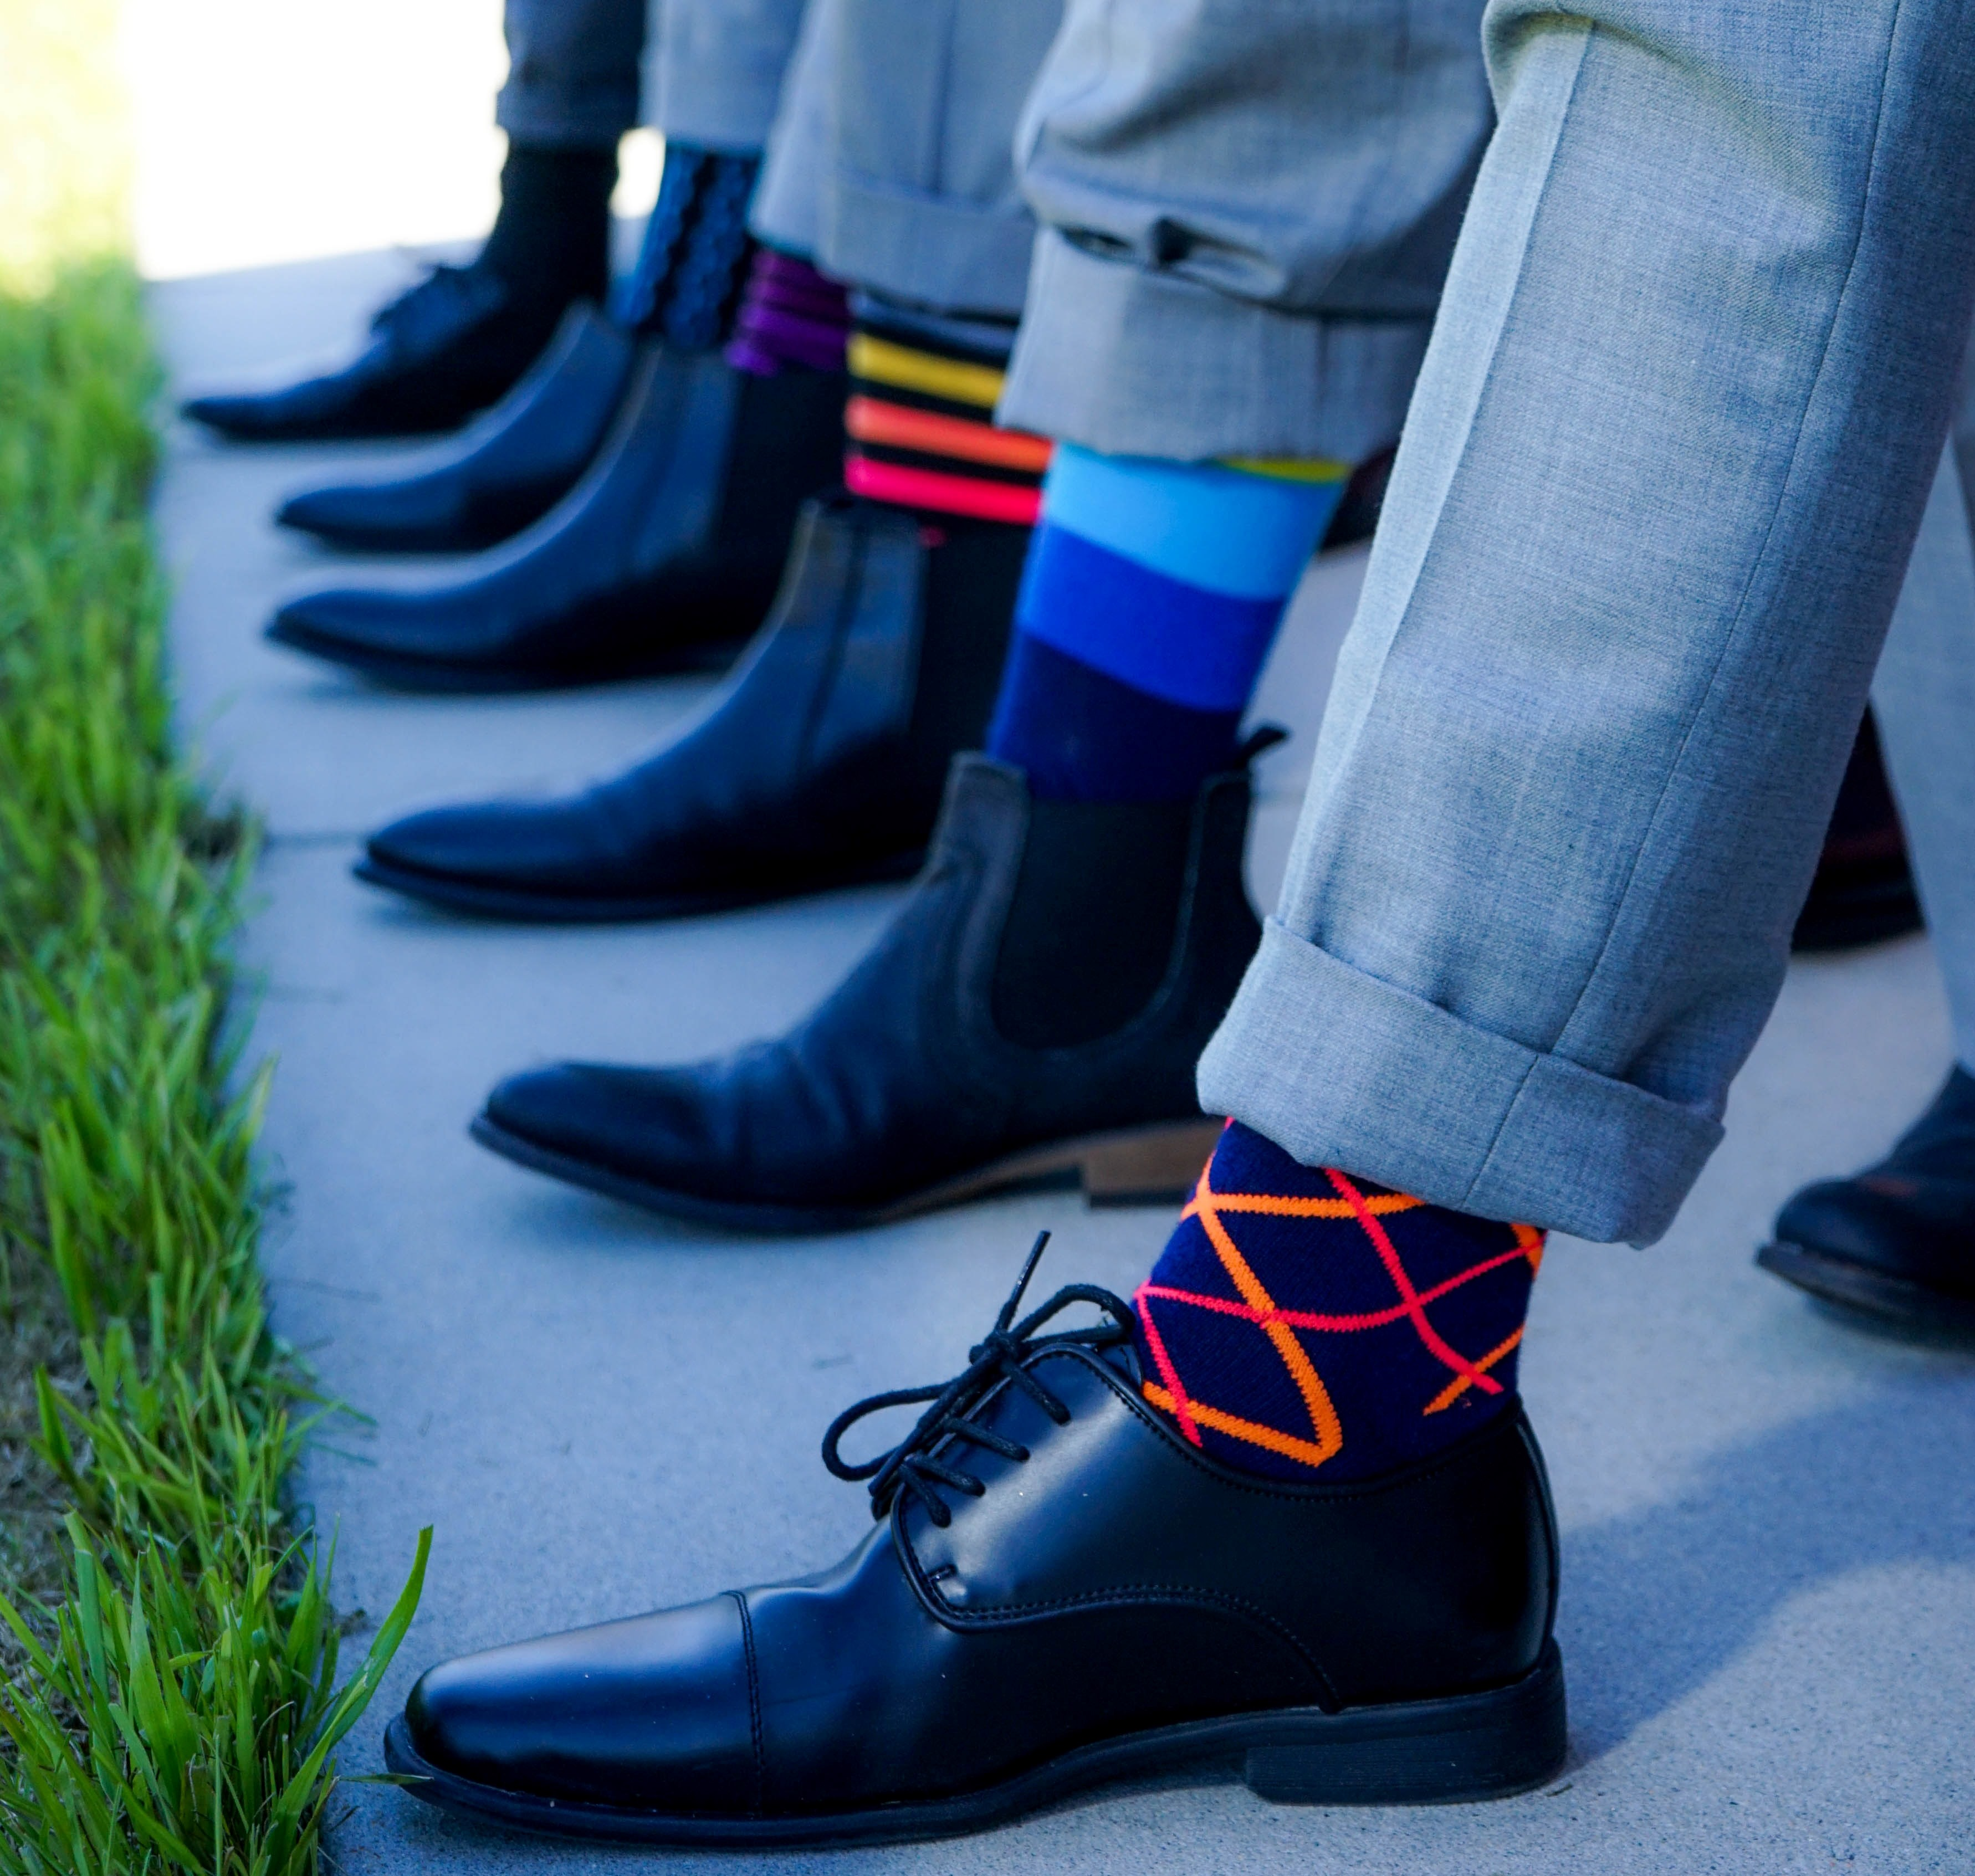 The World of Technicolour Socks